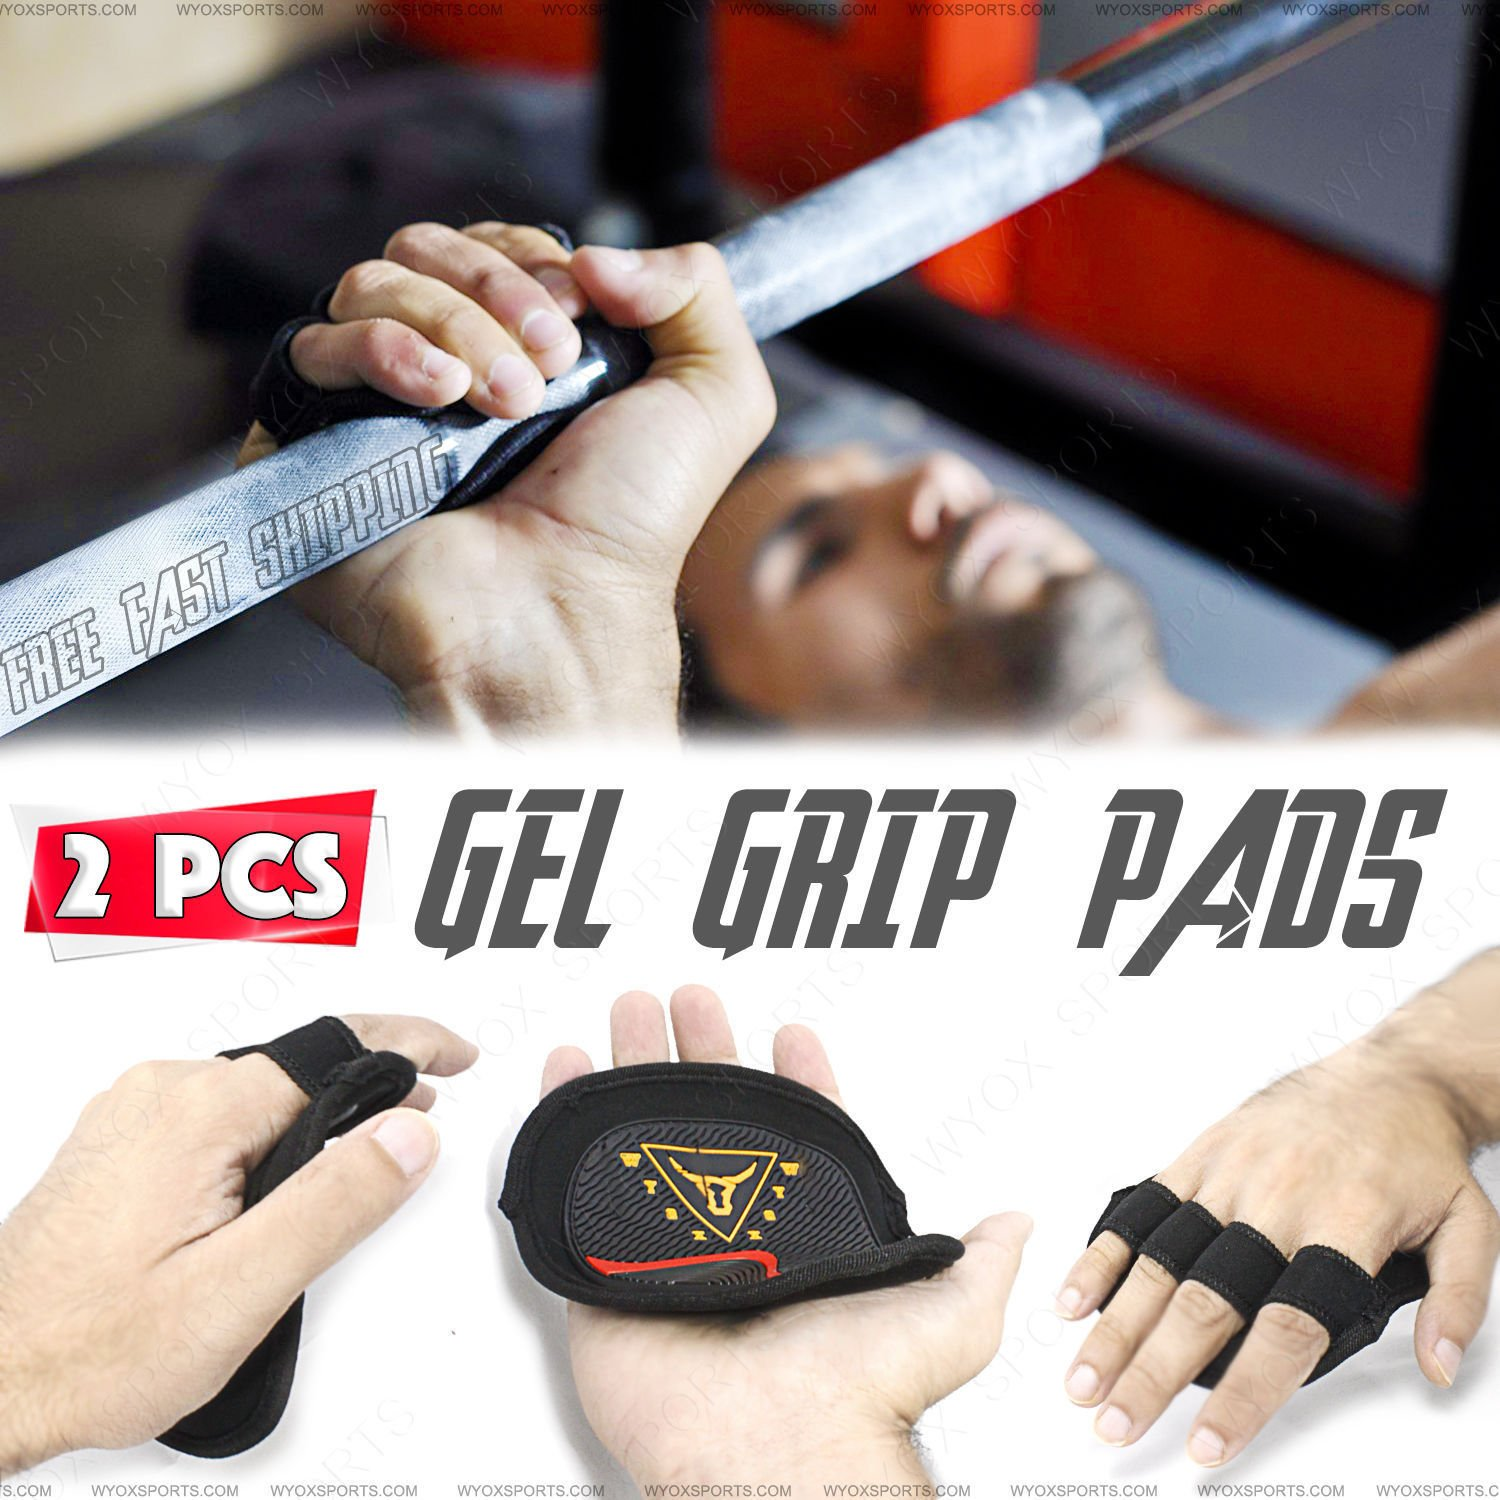 Exercise \u0026 Fitness Accessories Wyox Cross Training Gloves Xtreme Rubber Lifting Grip Pads Weight ...